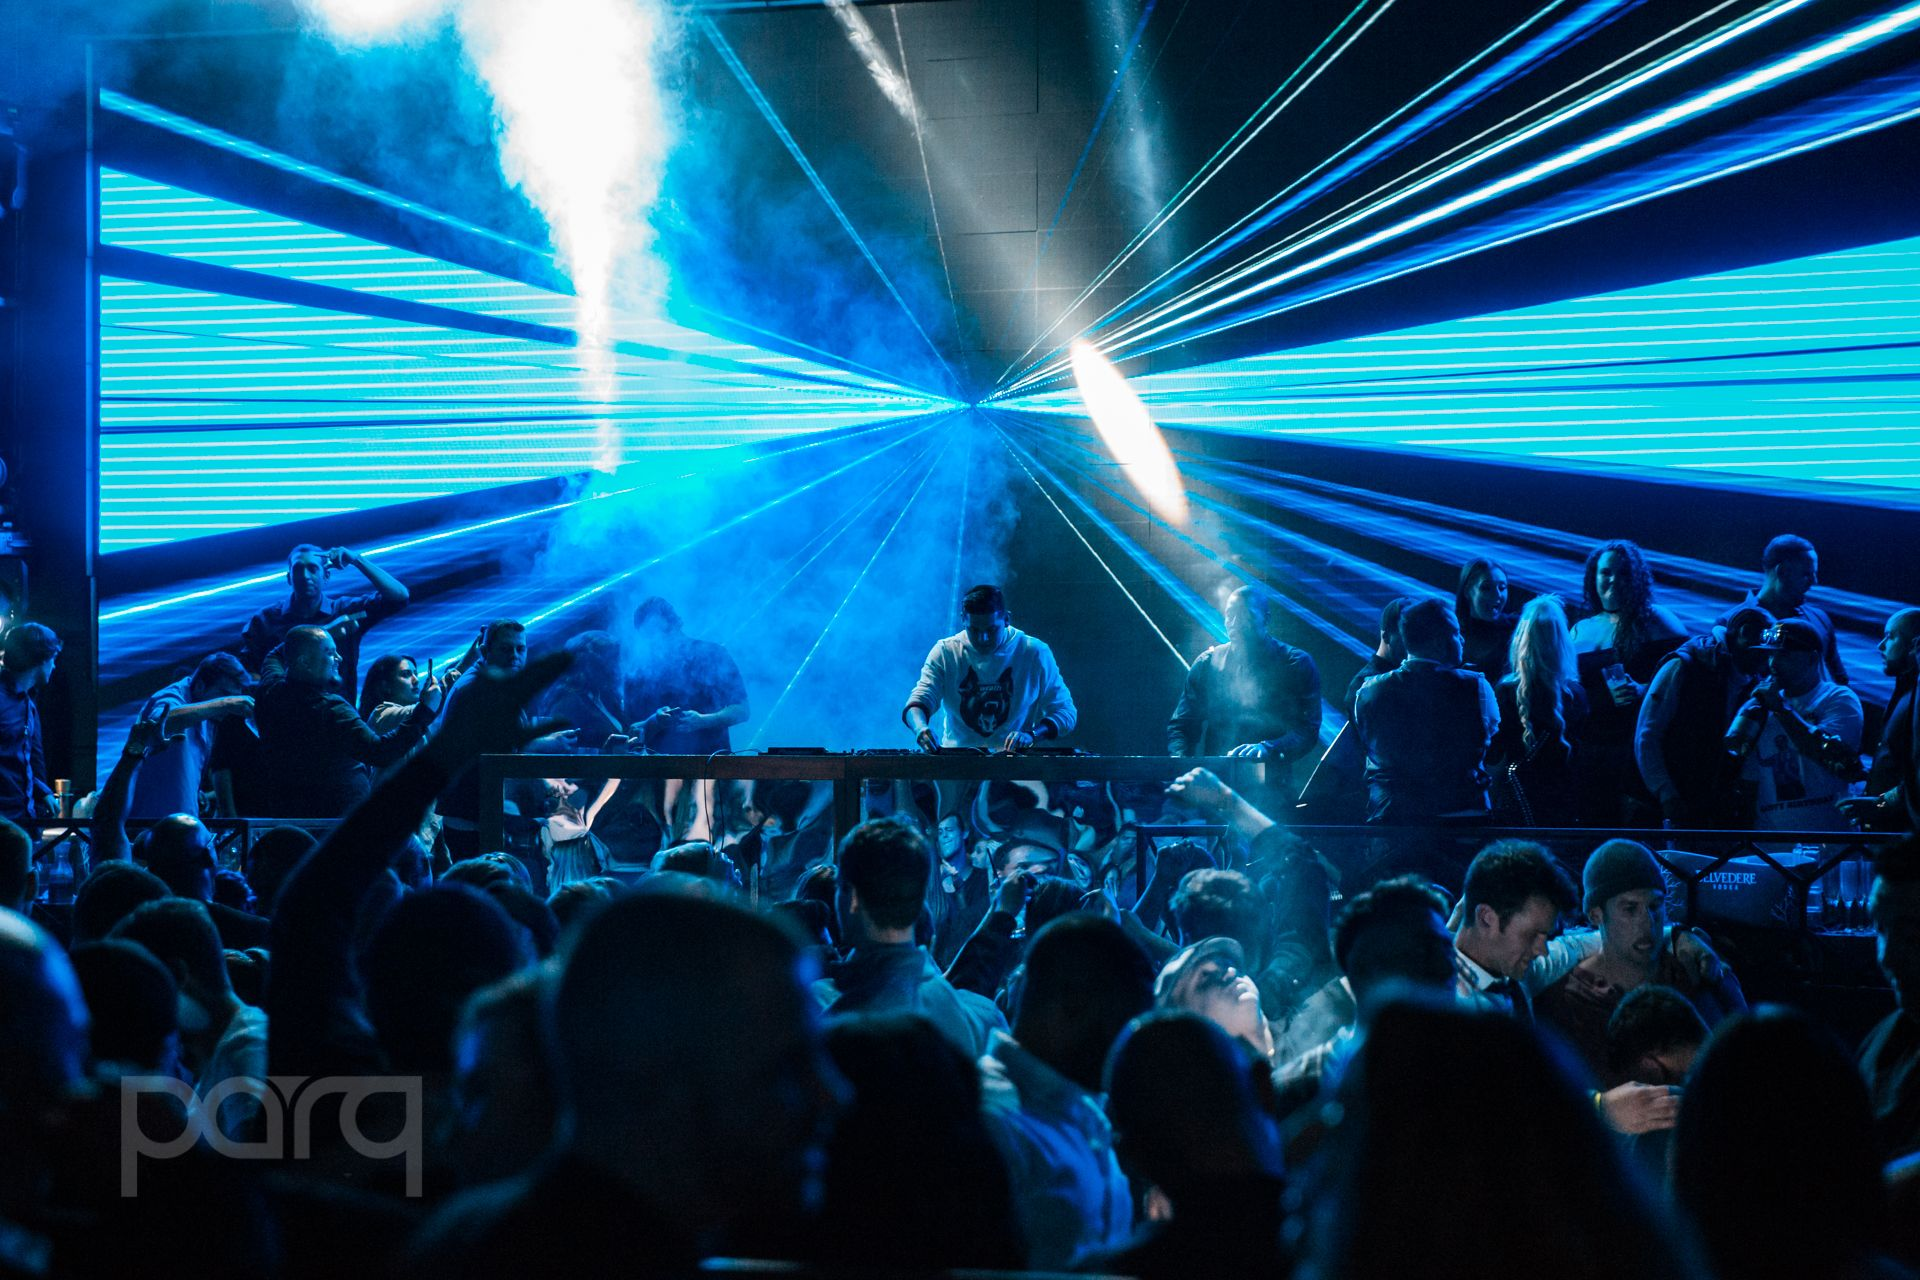 12.16.17 Parq - Zoo Funktion-43.jpg